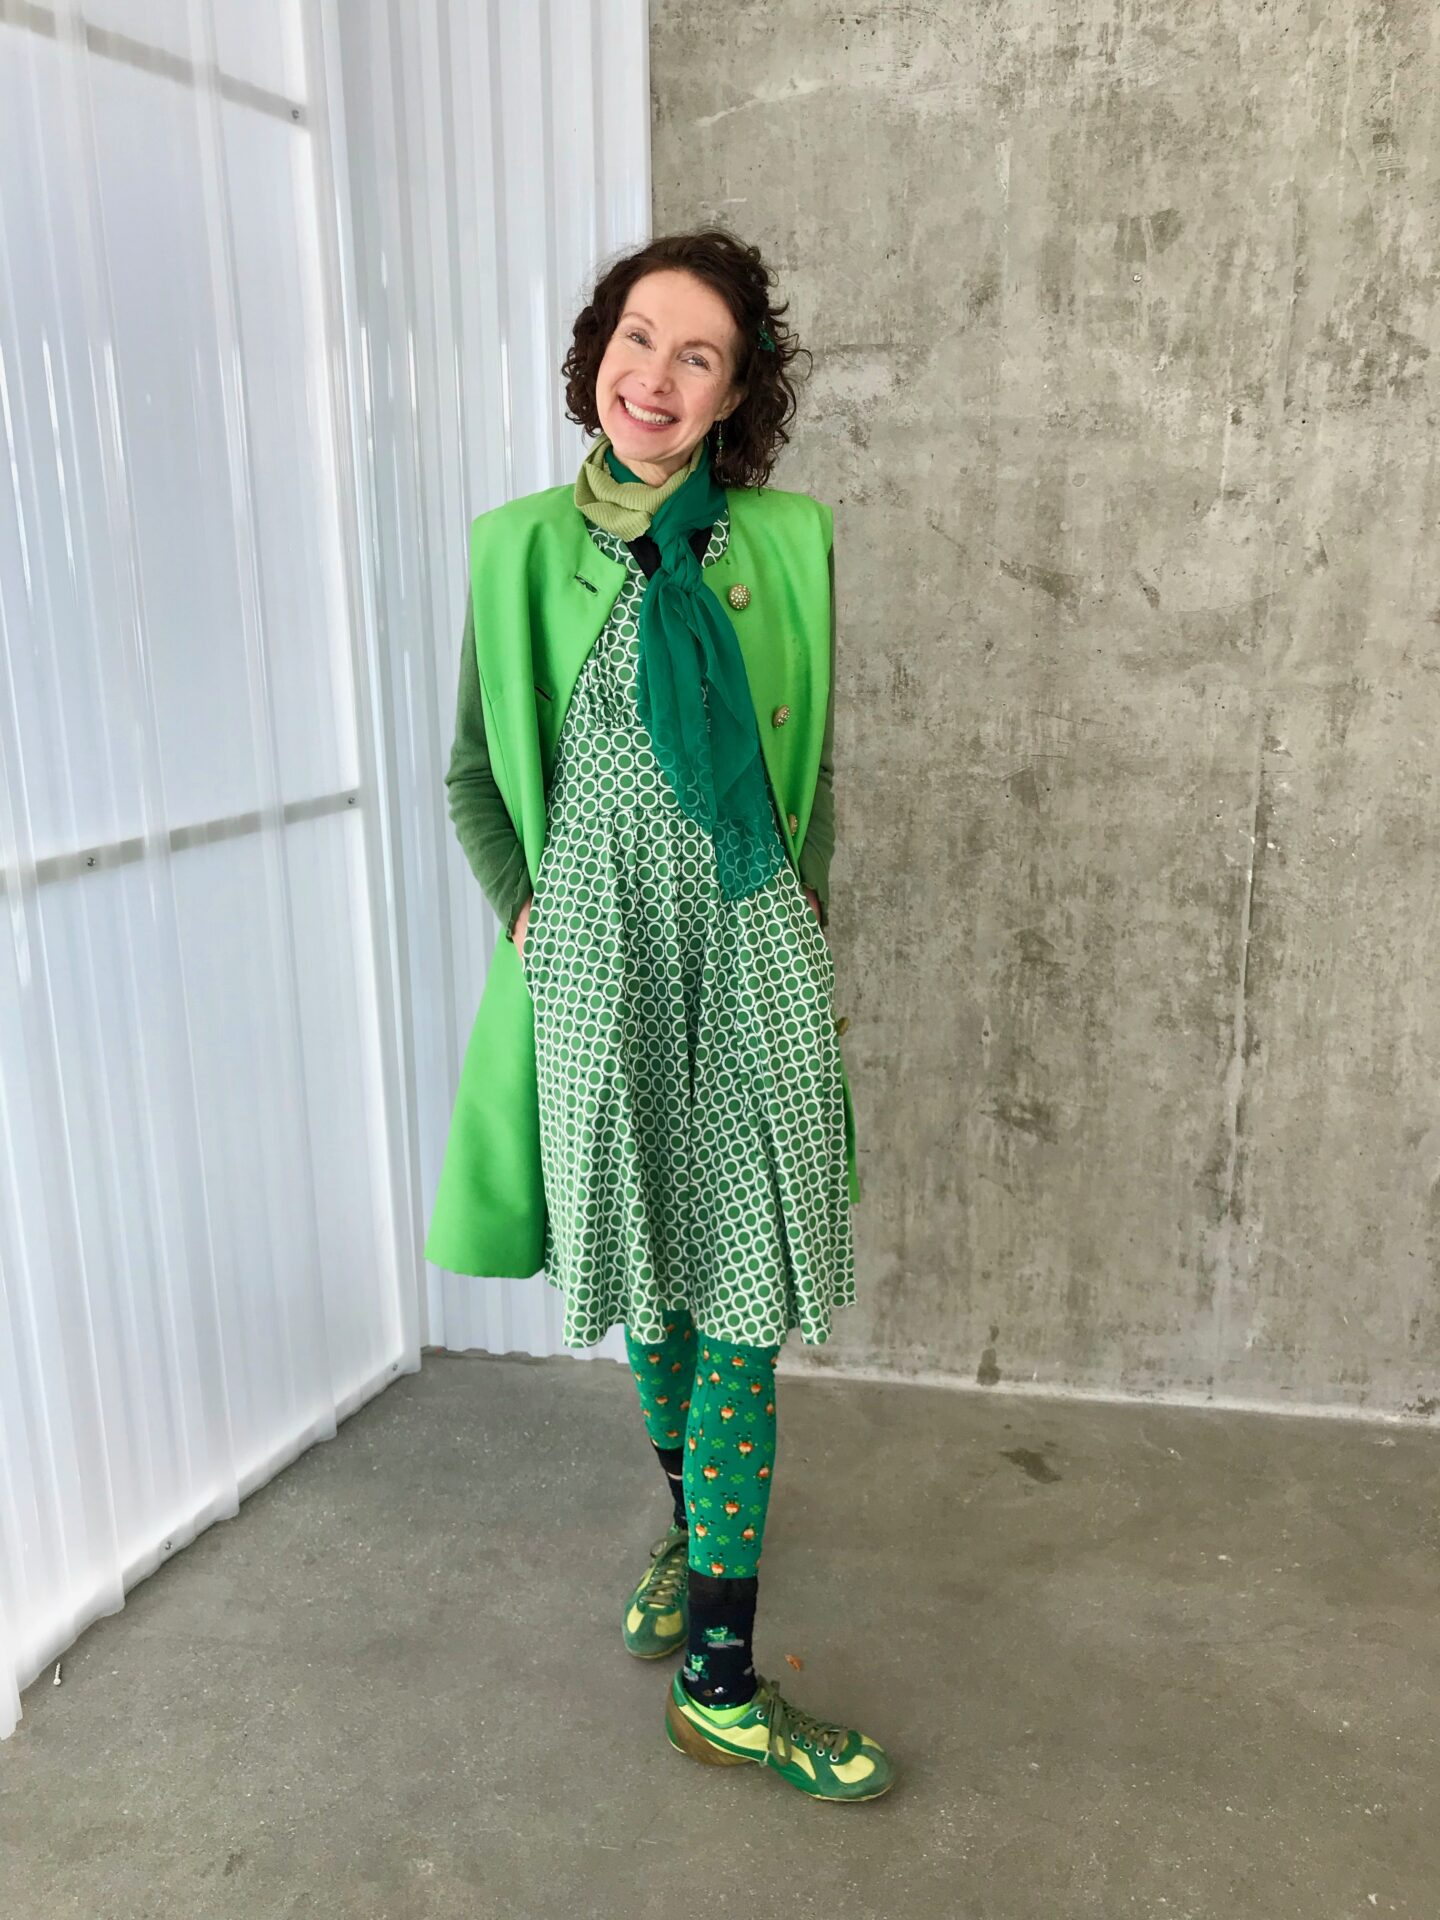 Health coach, Mo The Morselist, smiling and posing in a green dress with a green scarf, green leprechaun leggings and socks, and green shoes.